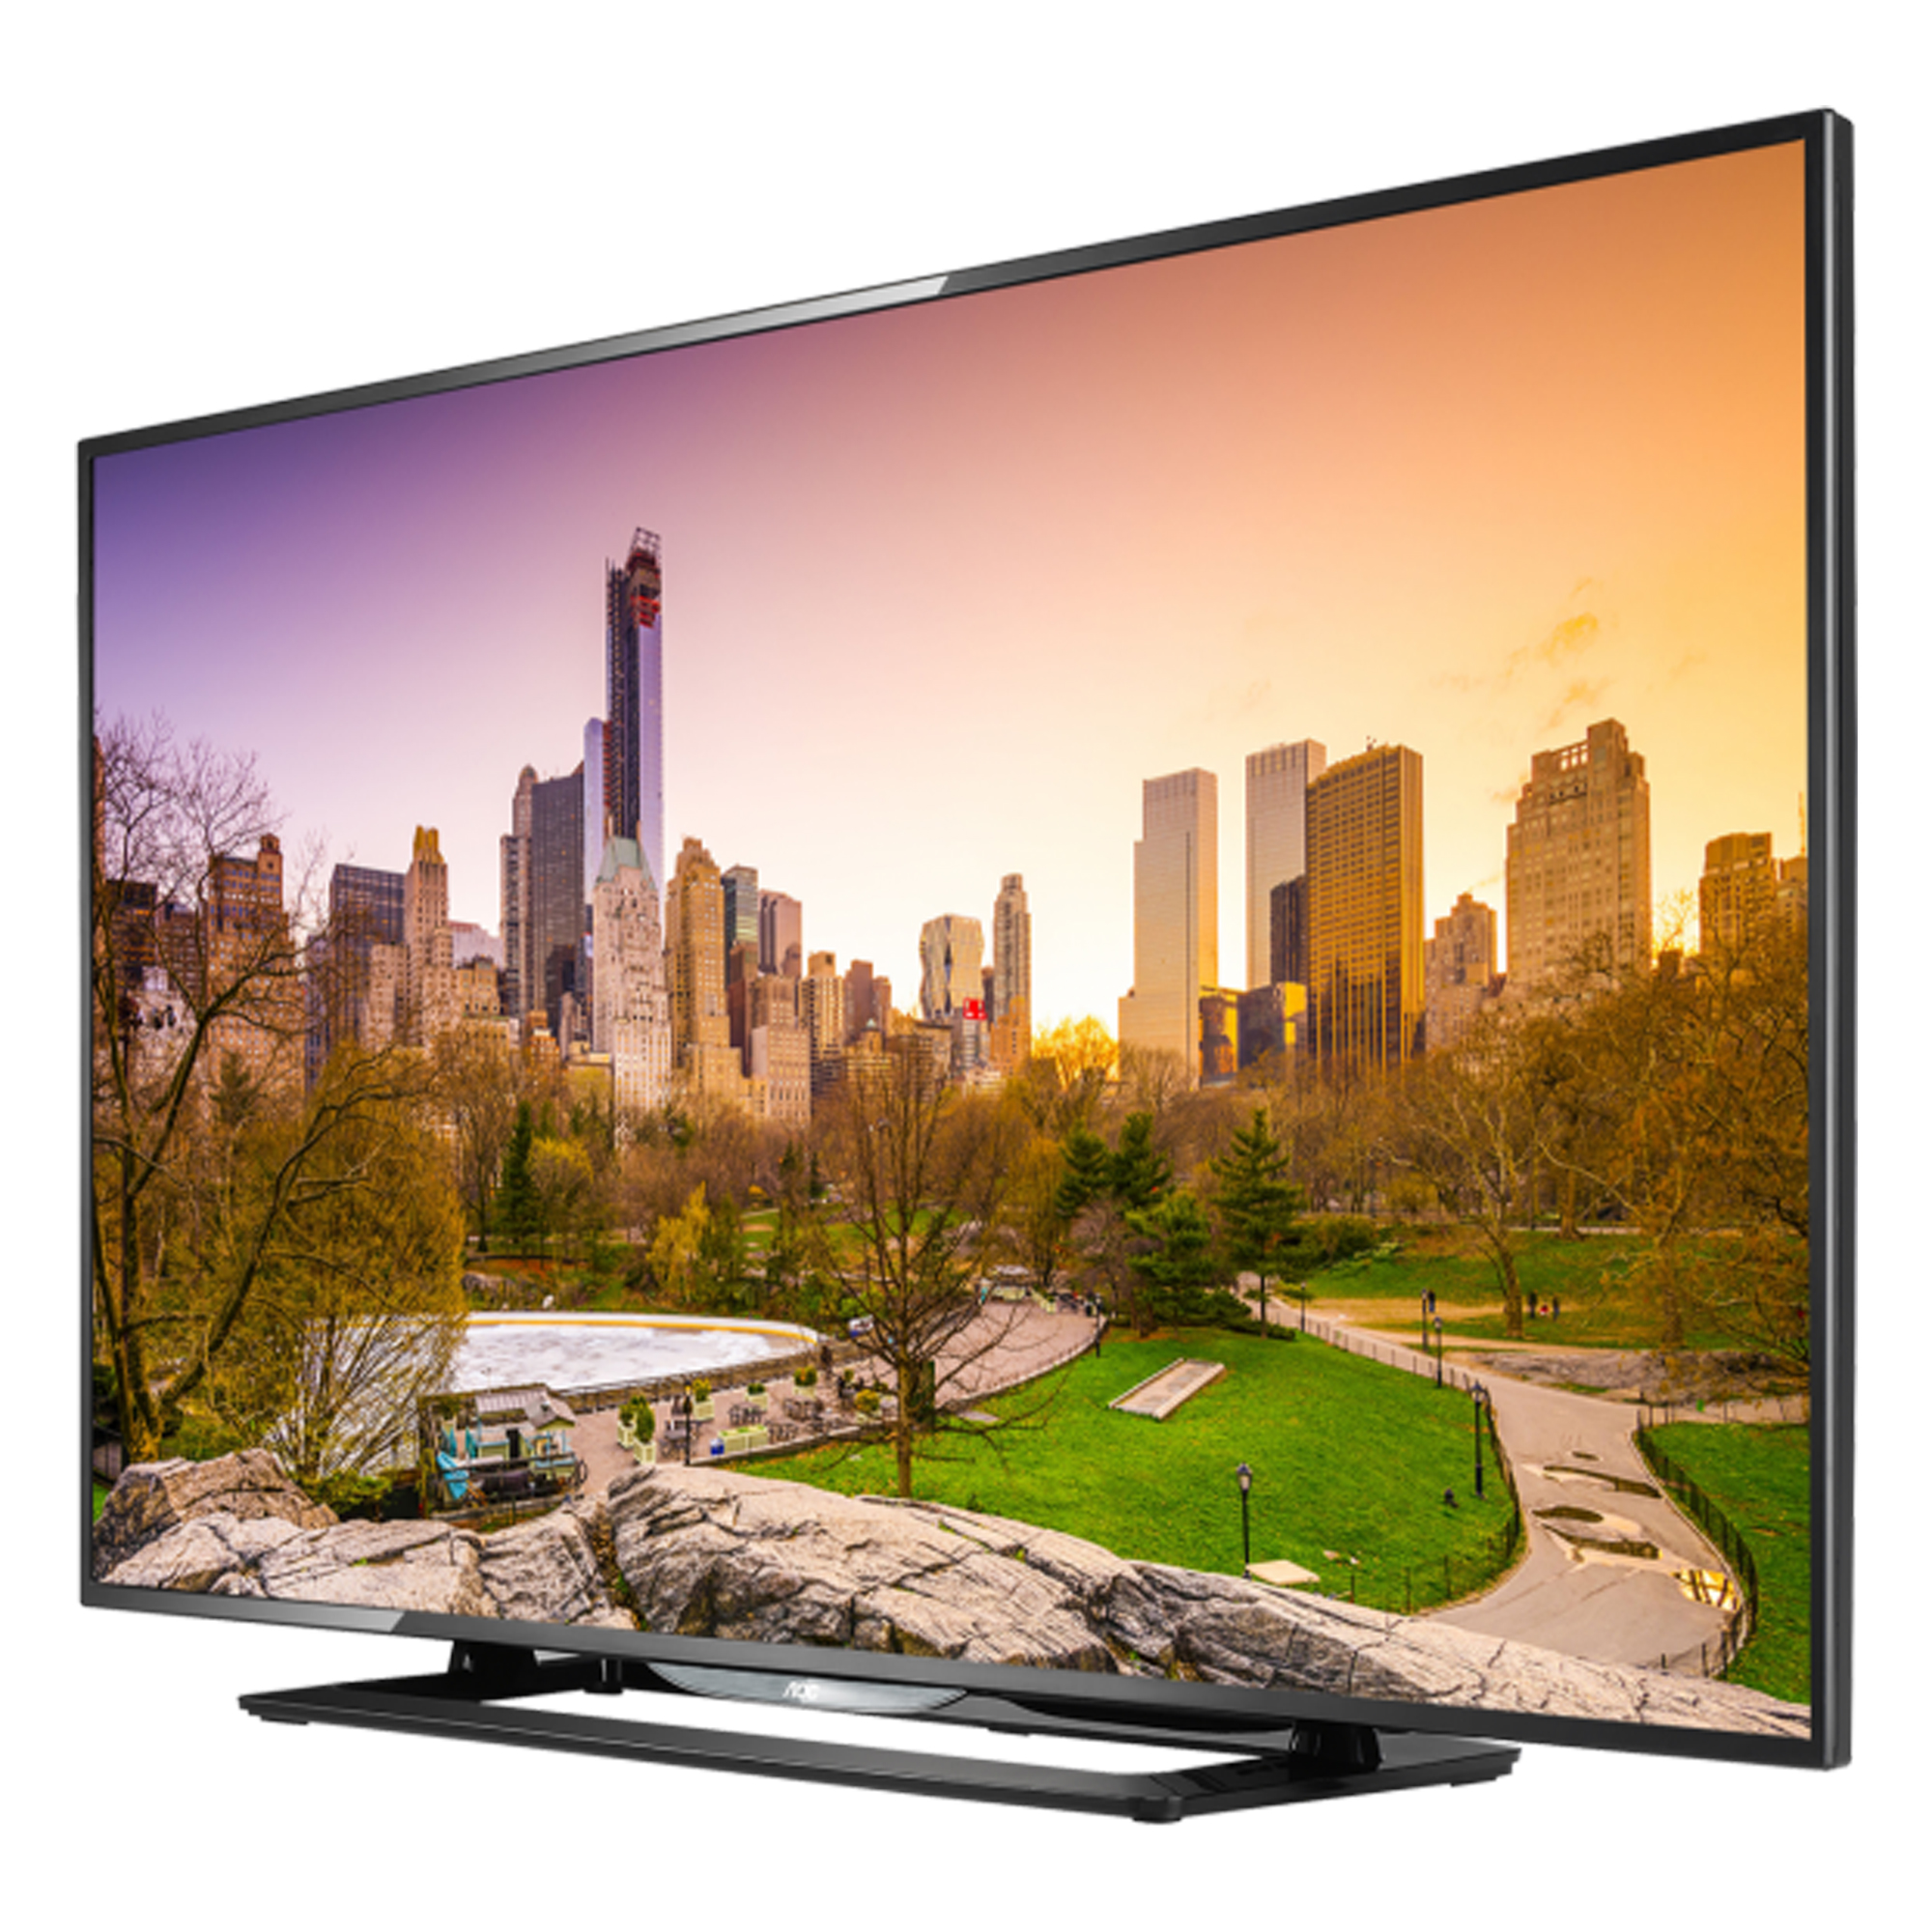 Televisor Smart LED Full HD 49\'\' LE49D5542 -&nbspSodimac.com.pe